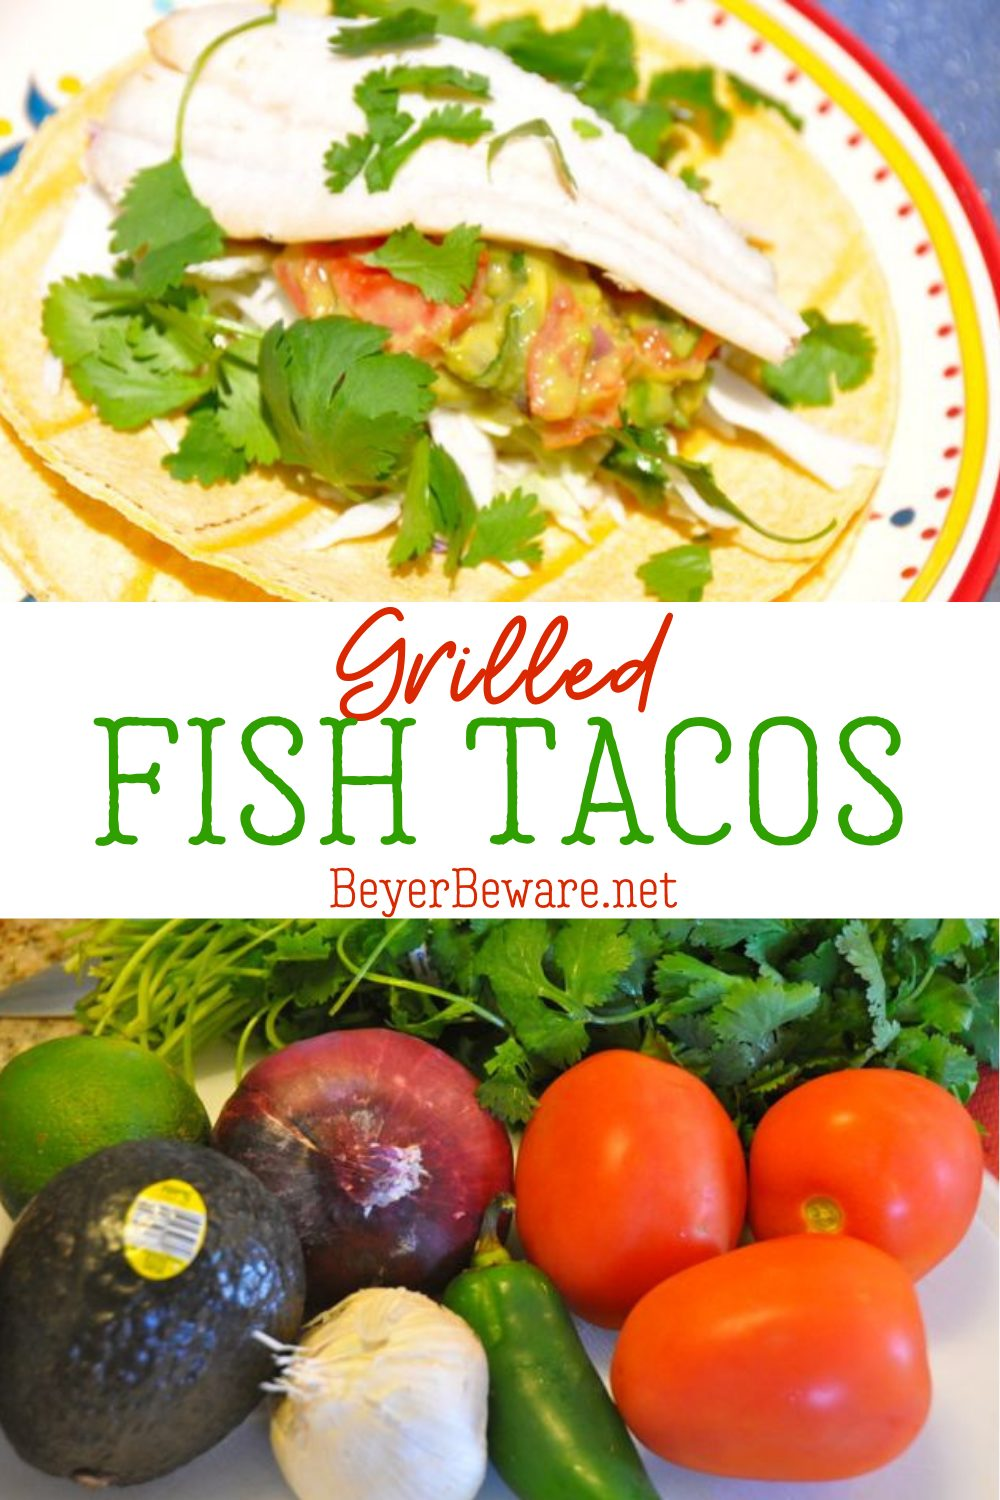 Grilled fish tacos with guacamole is a simple grilled fish recipe that is full of all the summer flavors for a refreshing fish taco with homemade guacamole.